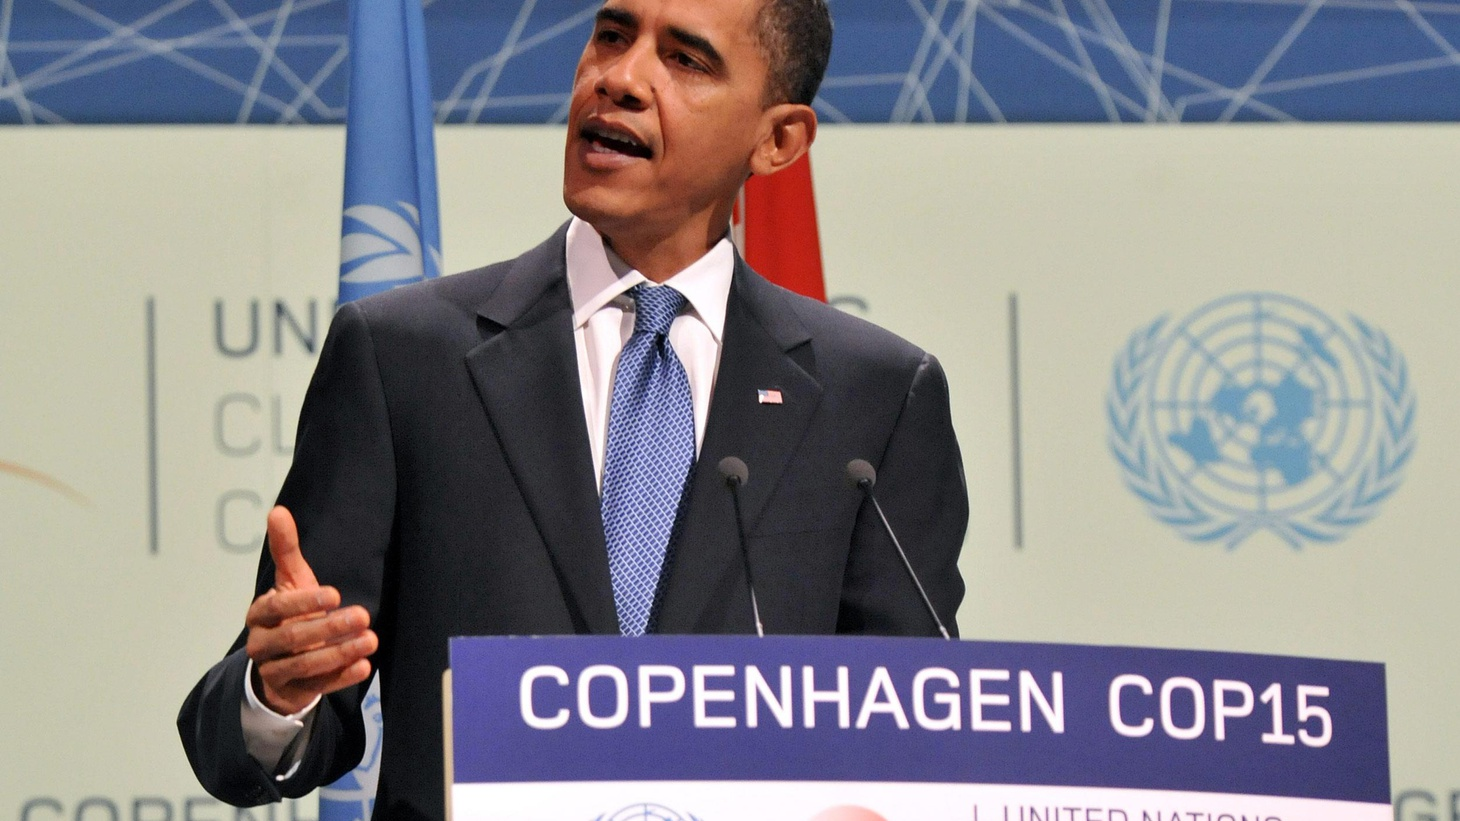 After some tough talk from President Obama, frenzied negotiations are under way to save the climate change talks from total failure. We get a progress report from Copenhagen and hear what might happen next. Also, climate change and the prospect of mass migration.